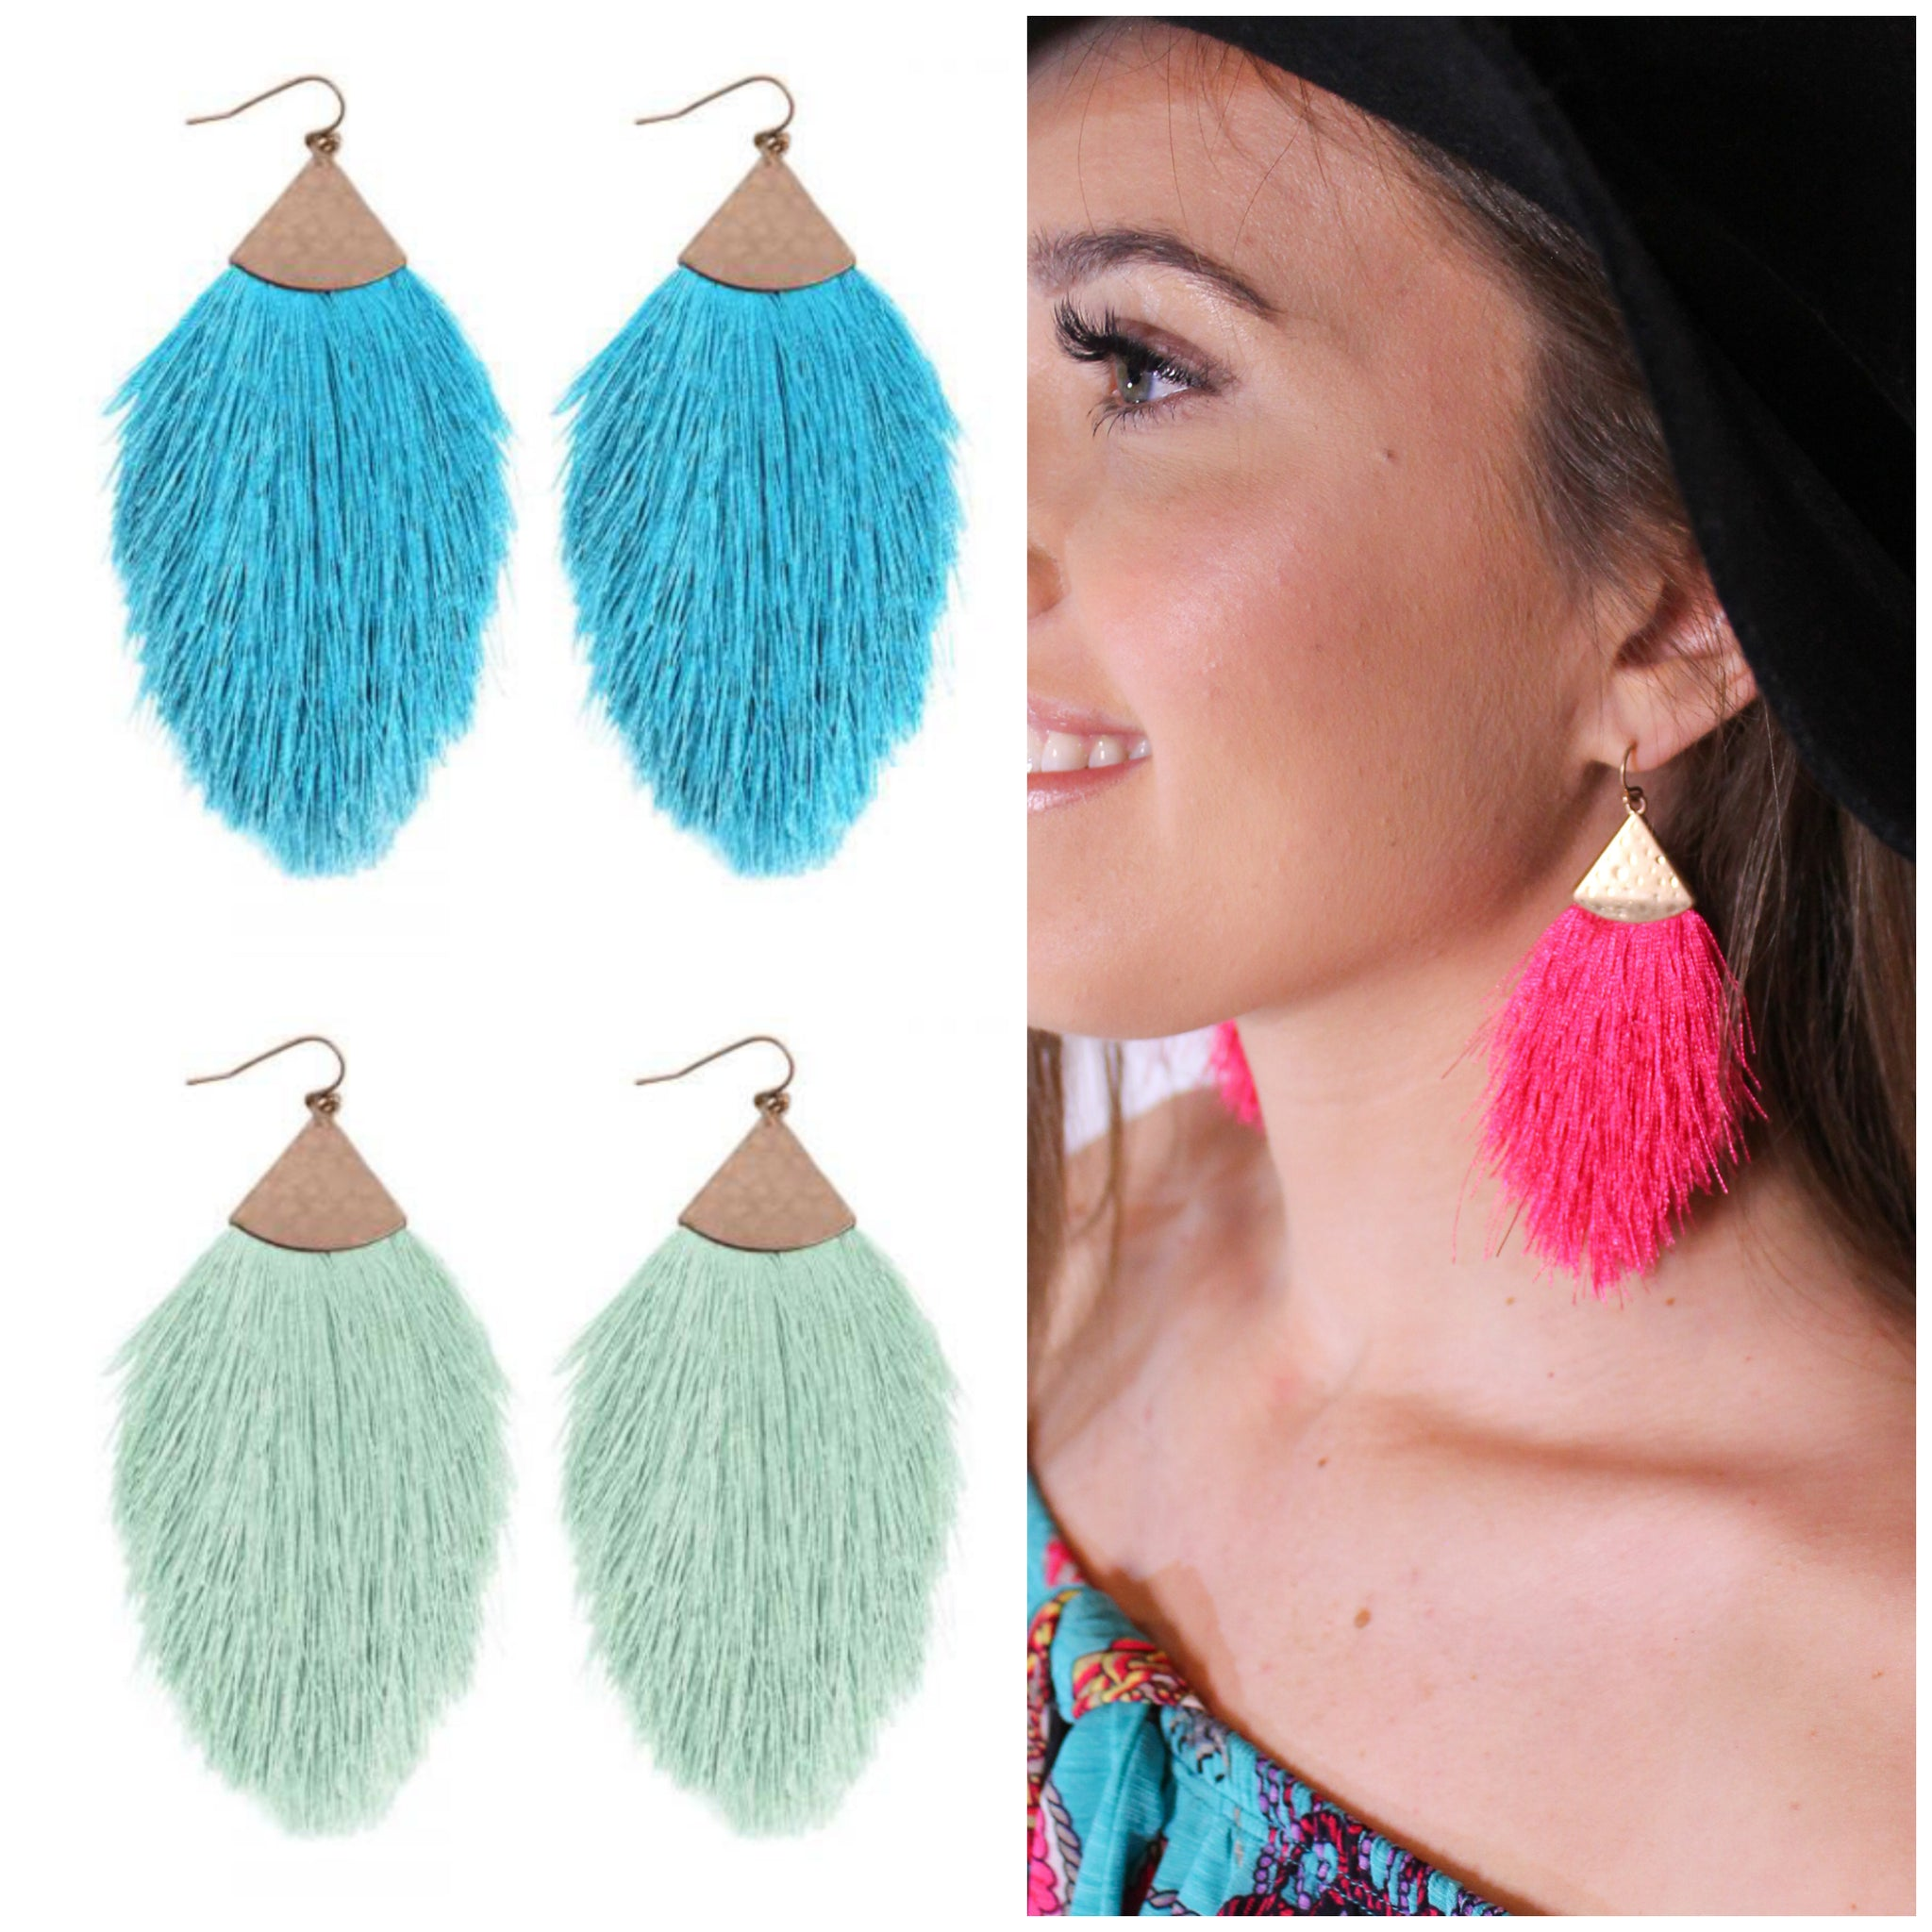 Springtime Fringe Earrings